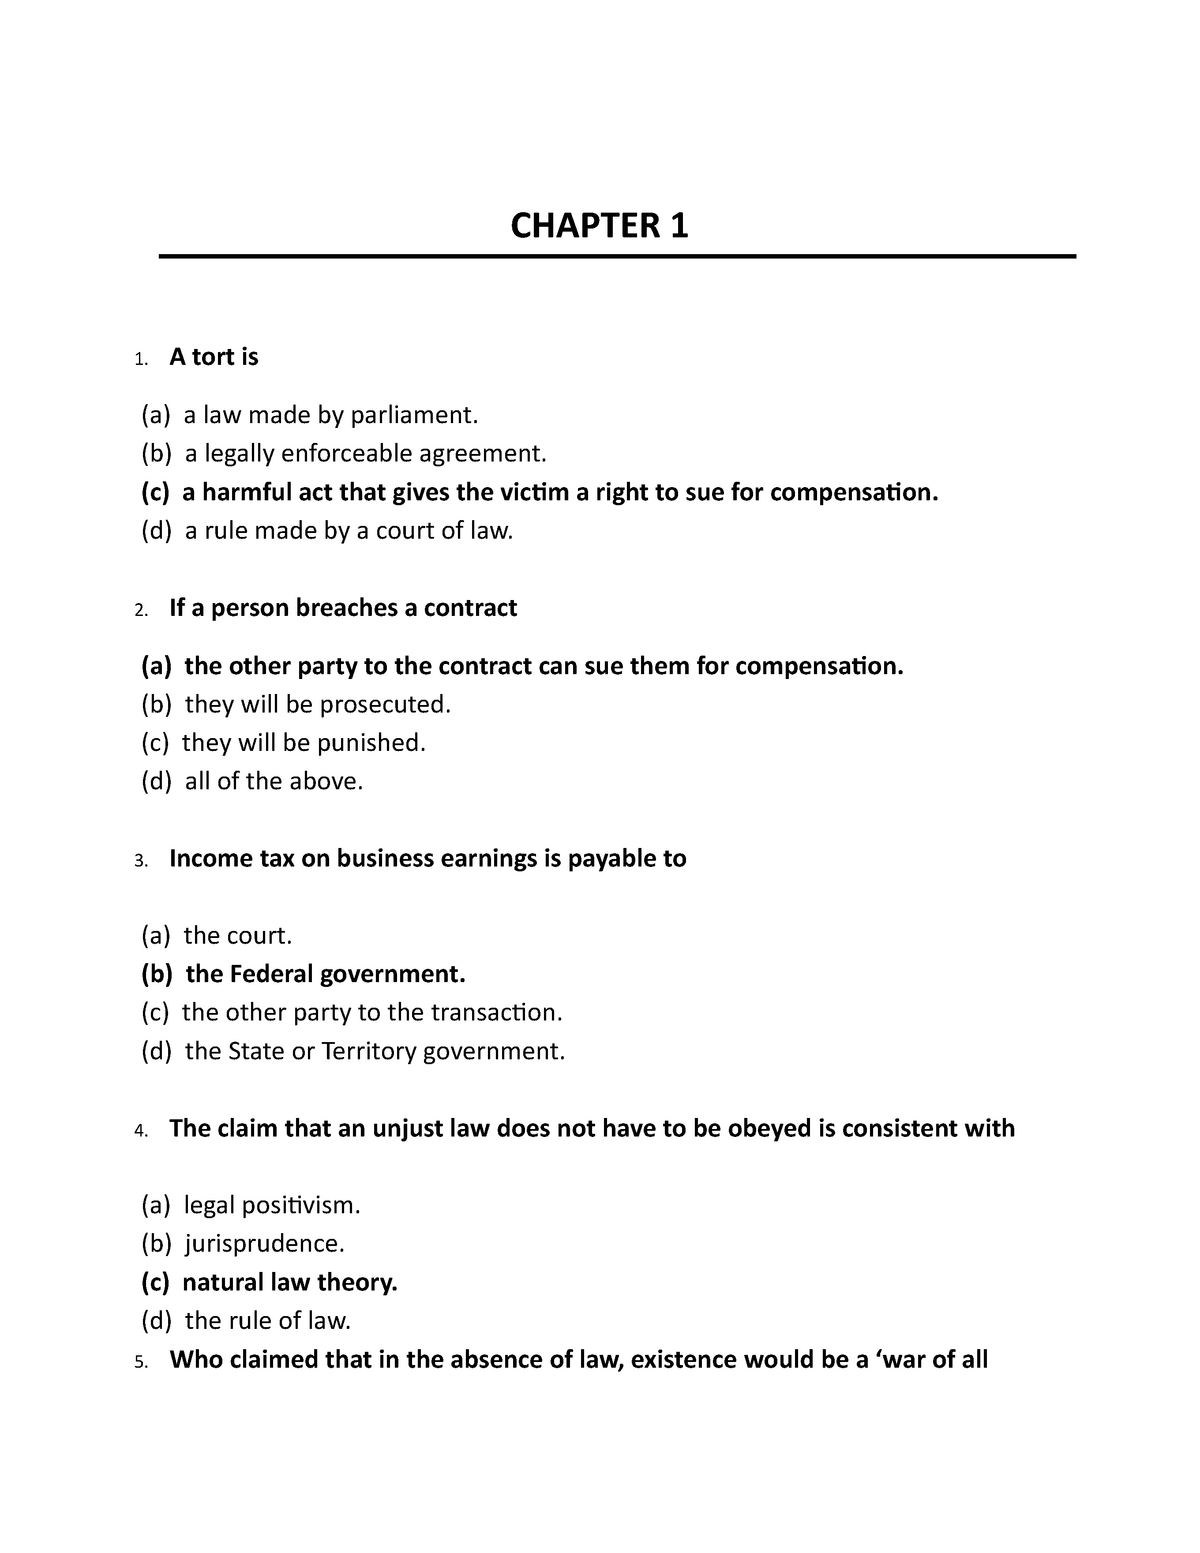 MCQ EXAM - LAW2446 Commercial Law - RMIT - StuDocu